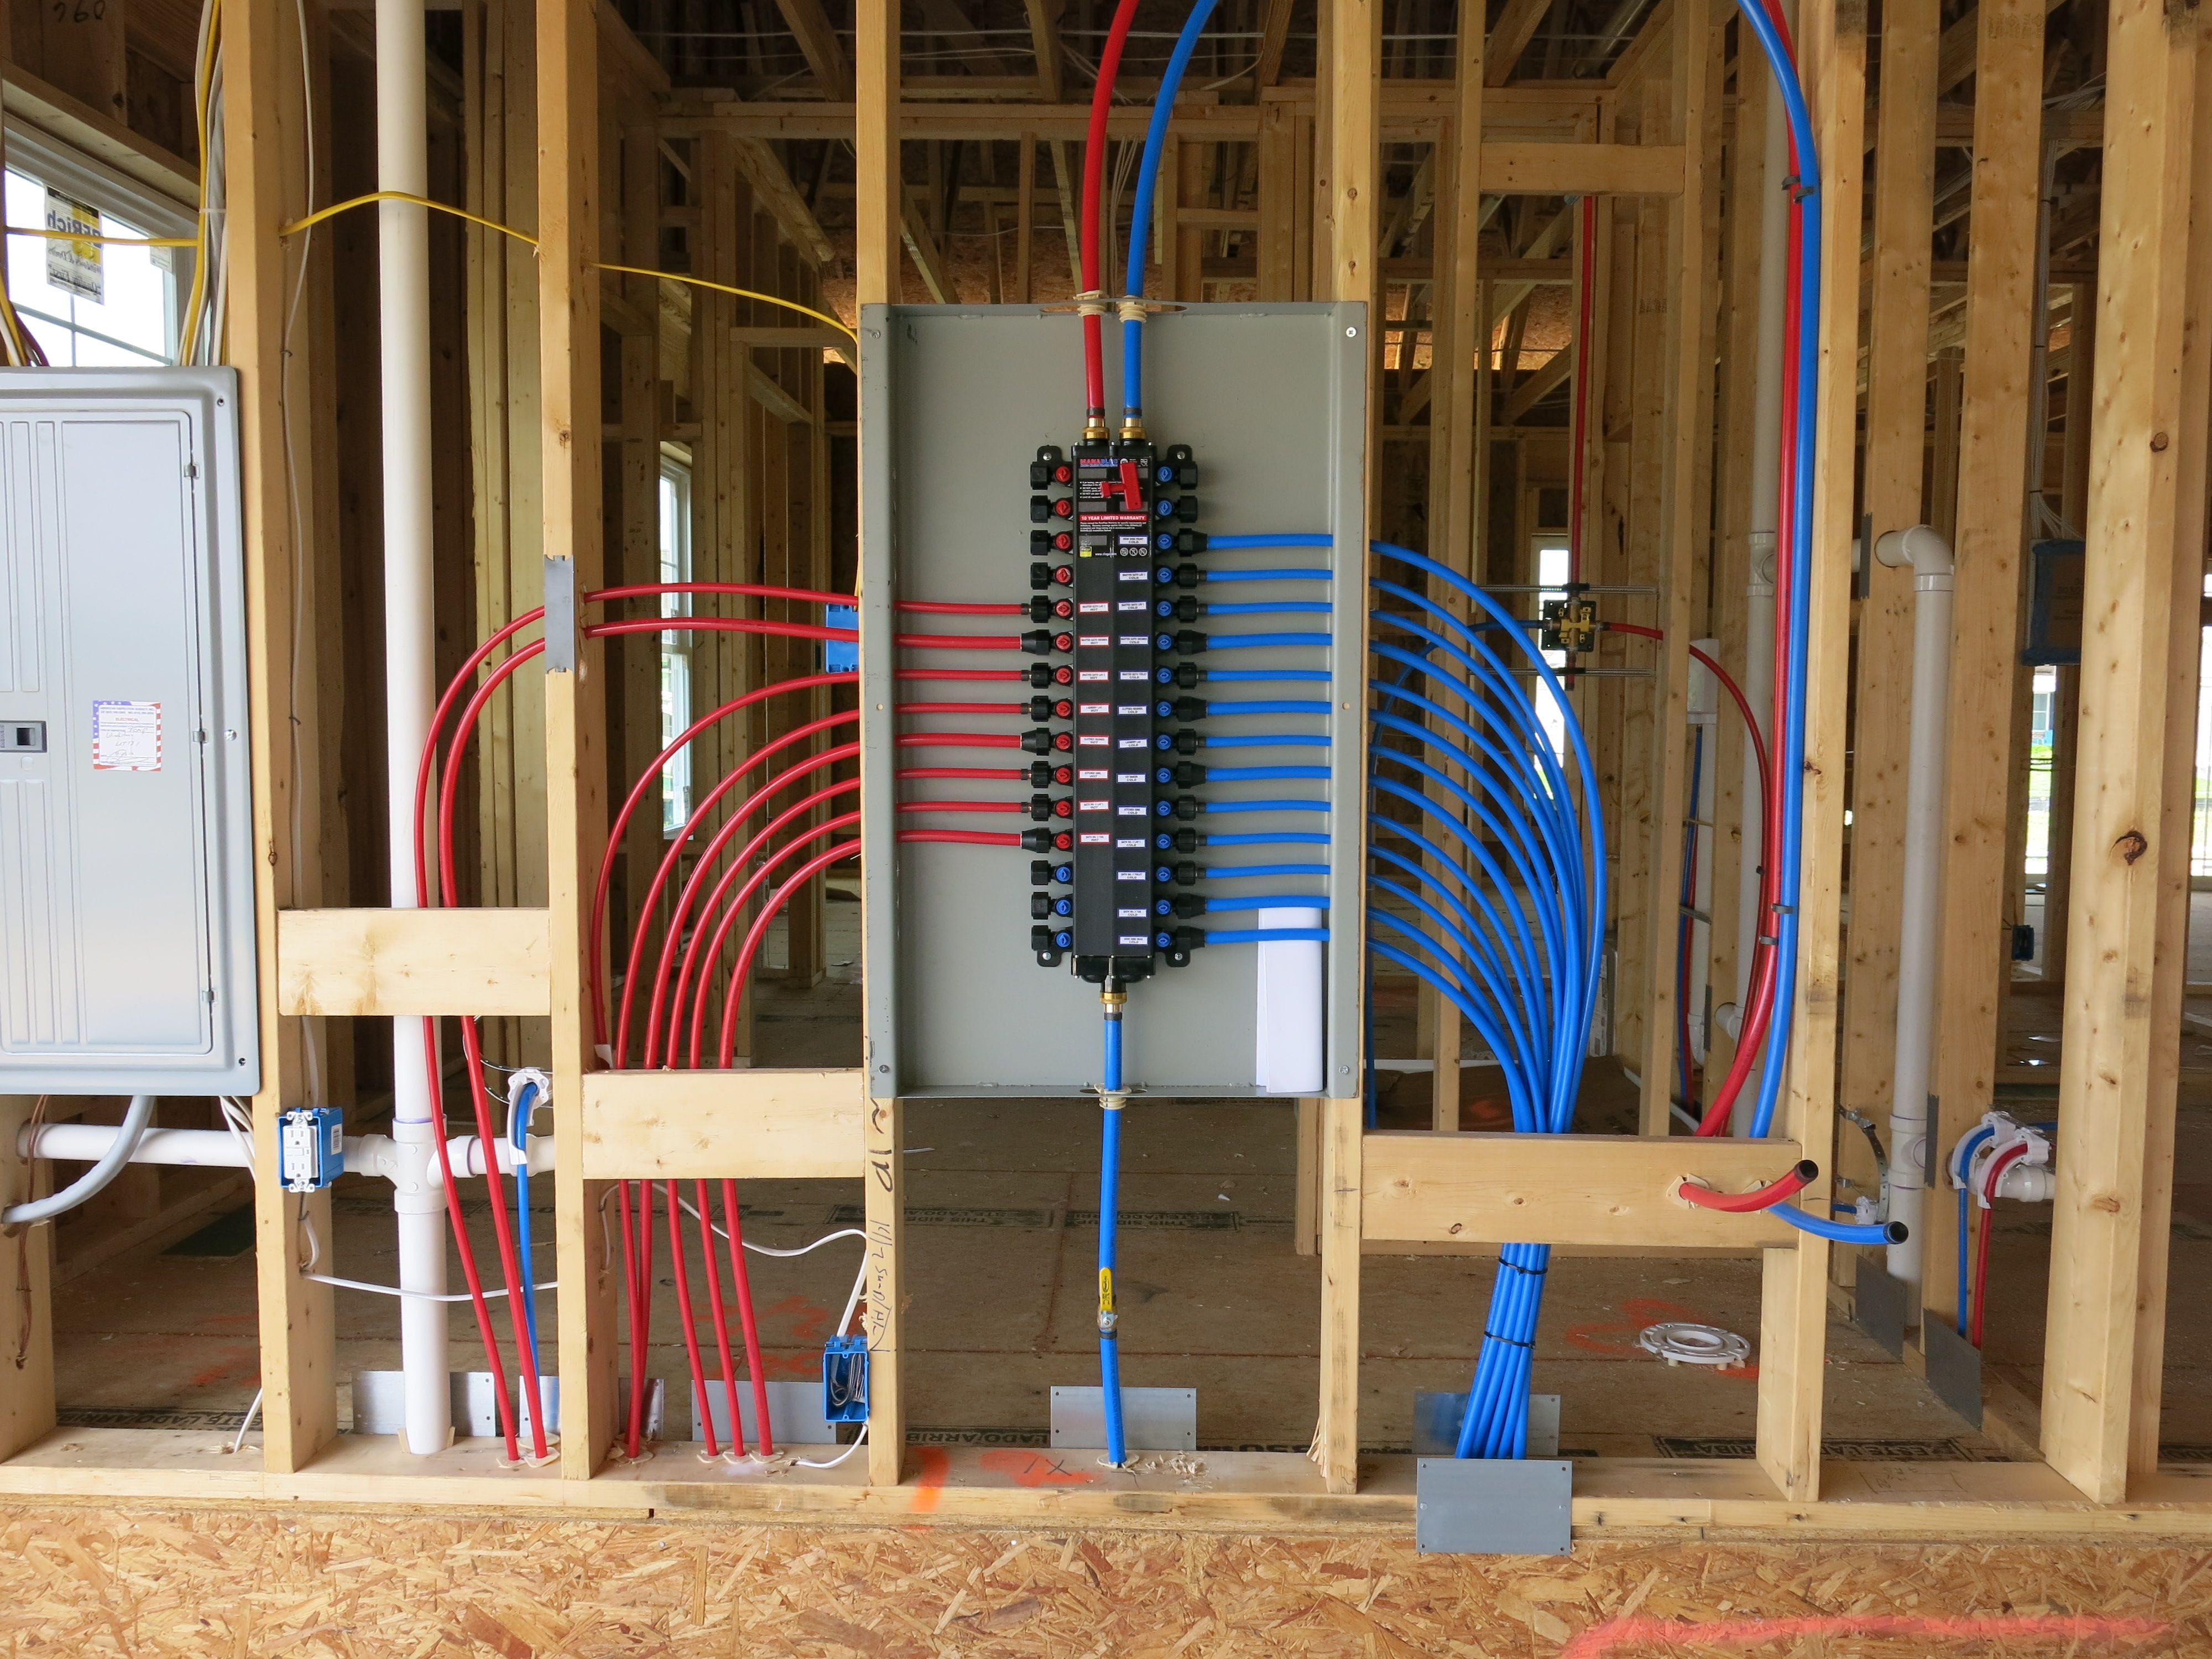 We Use The Manabloc Plumbing System Which Provides A Separate